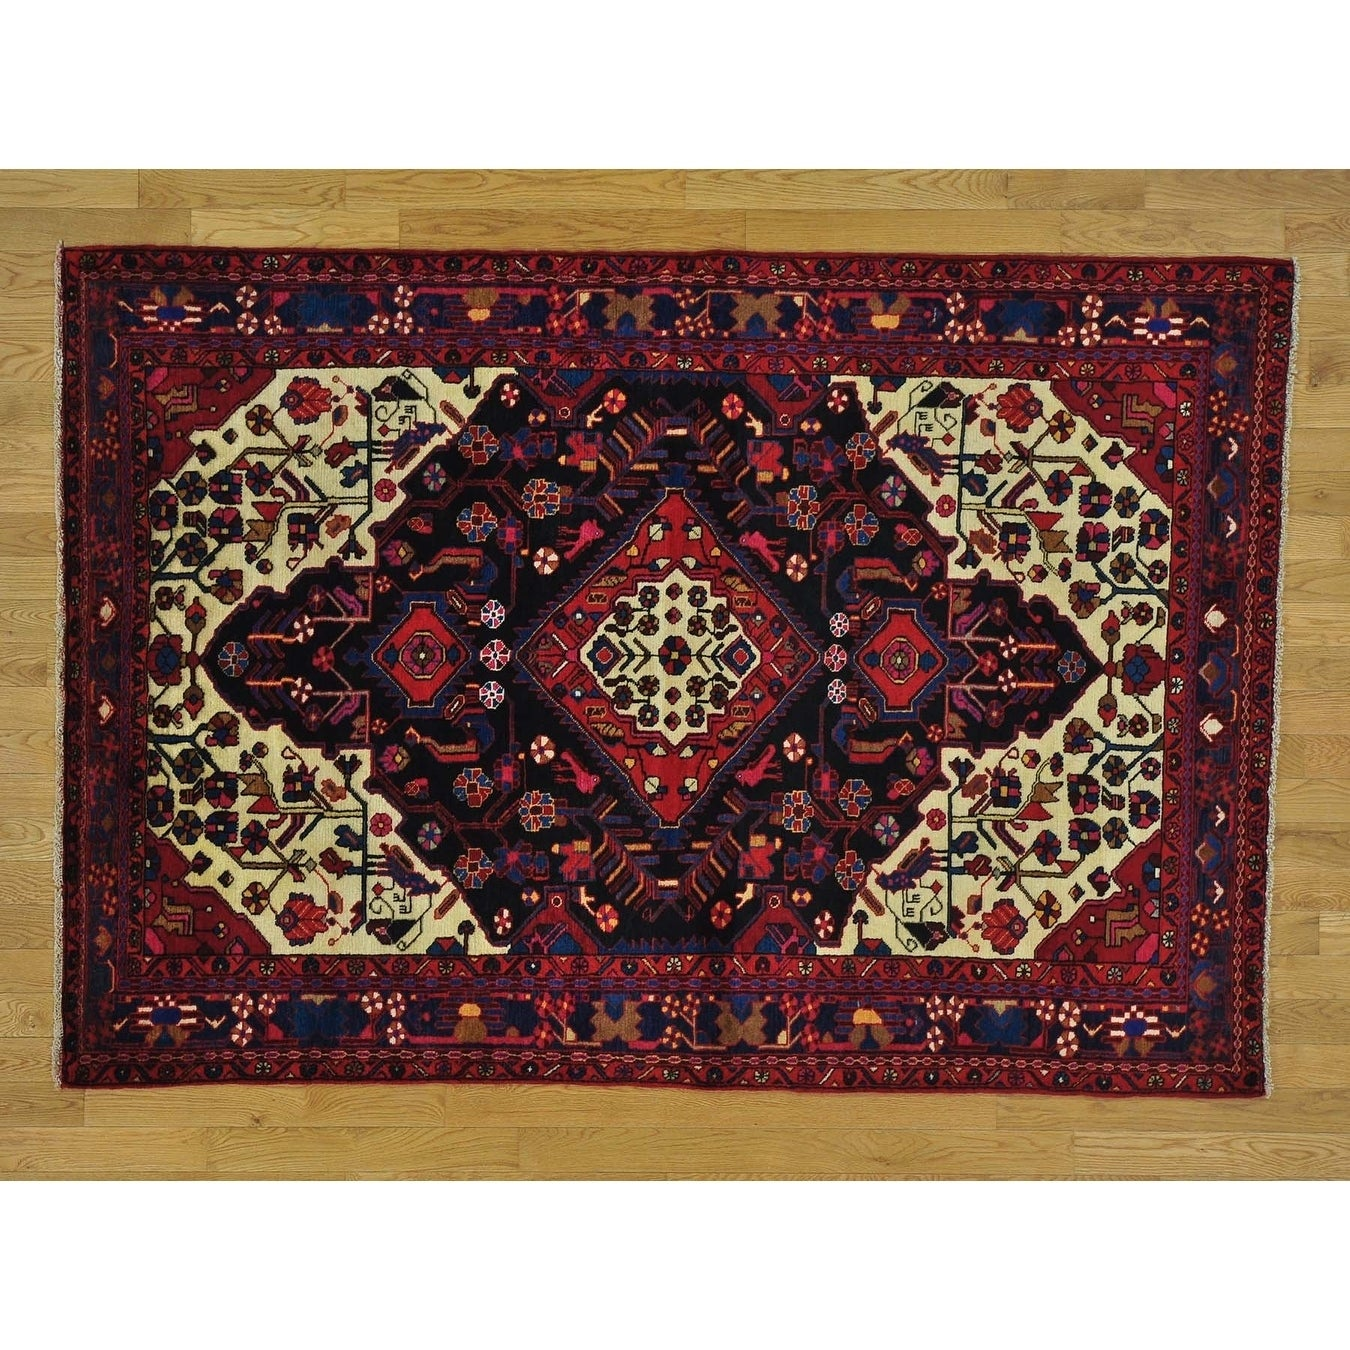 Hand Knotted Black Persian with Wool Oriental Rug - 5'2 x 7'8